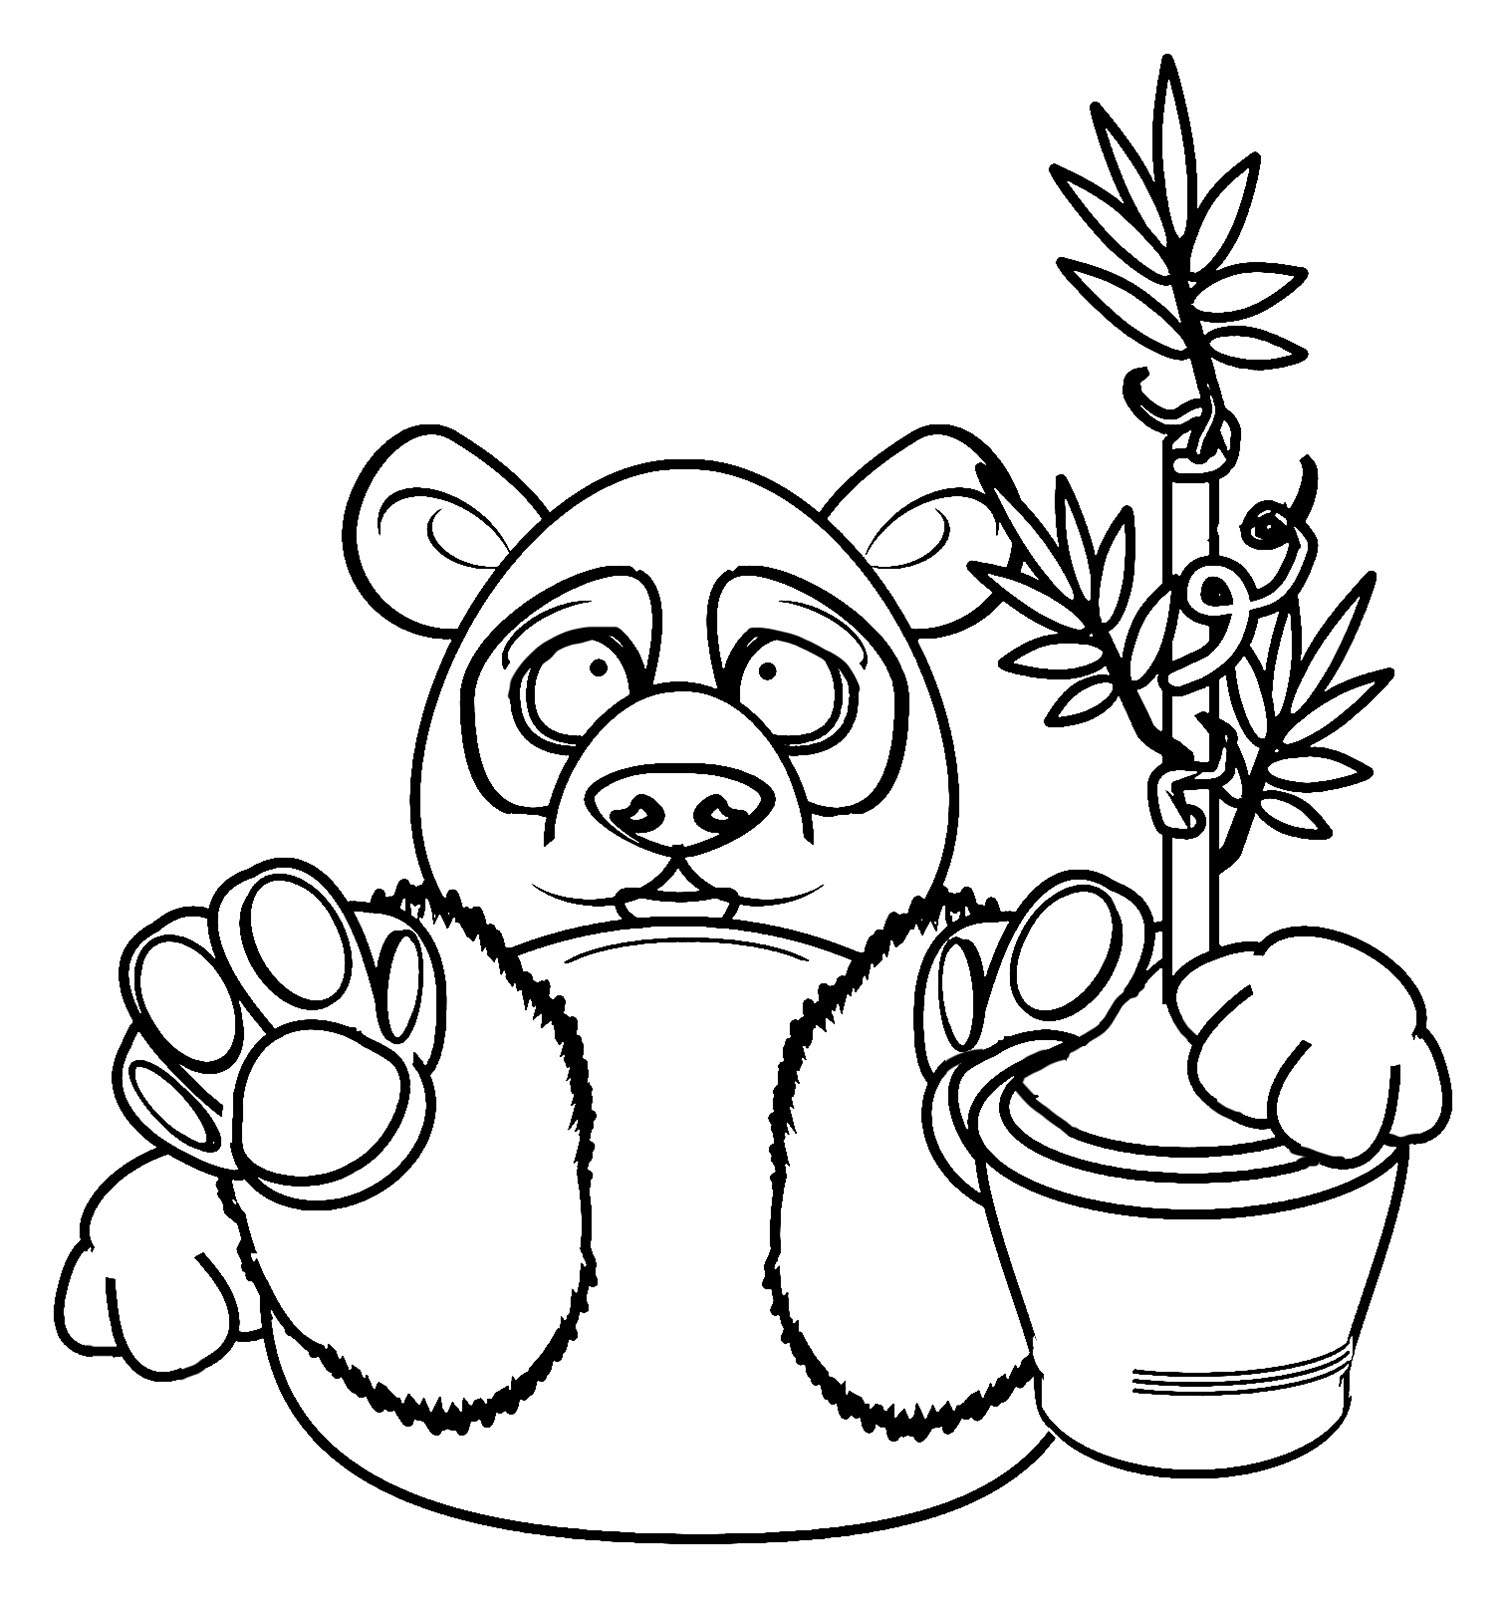 Easy free Pandas coloring page to download